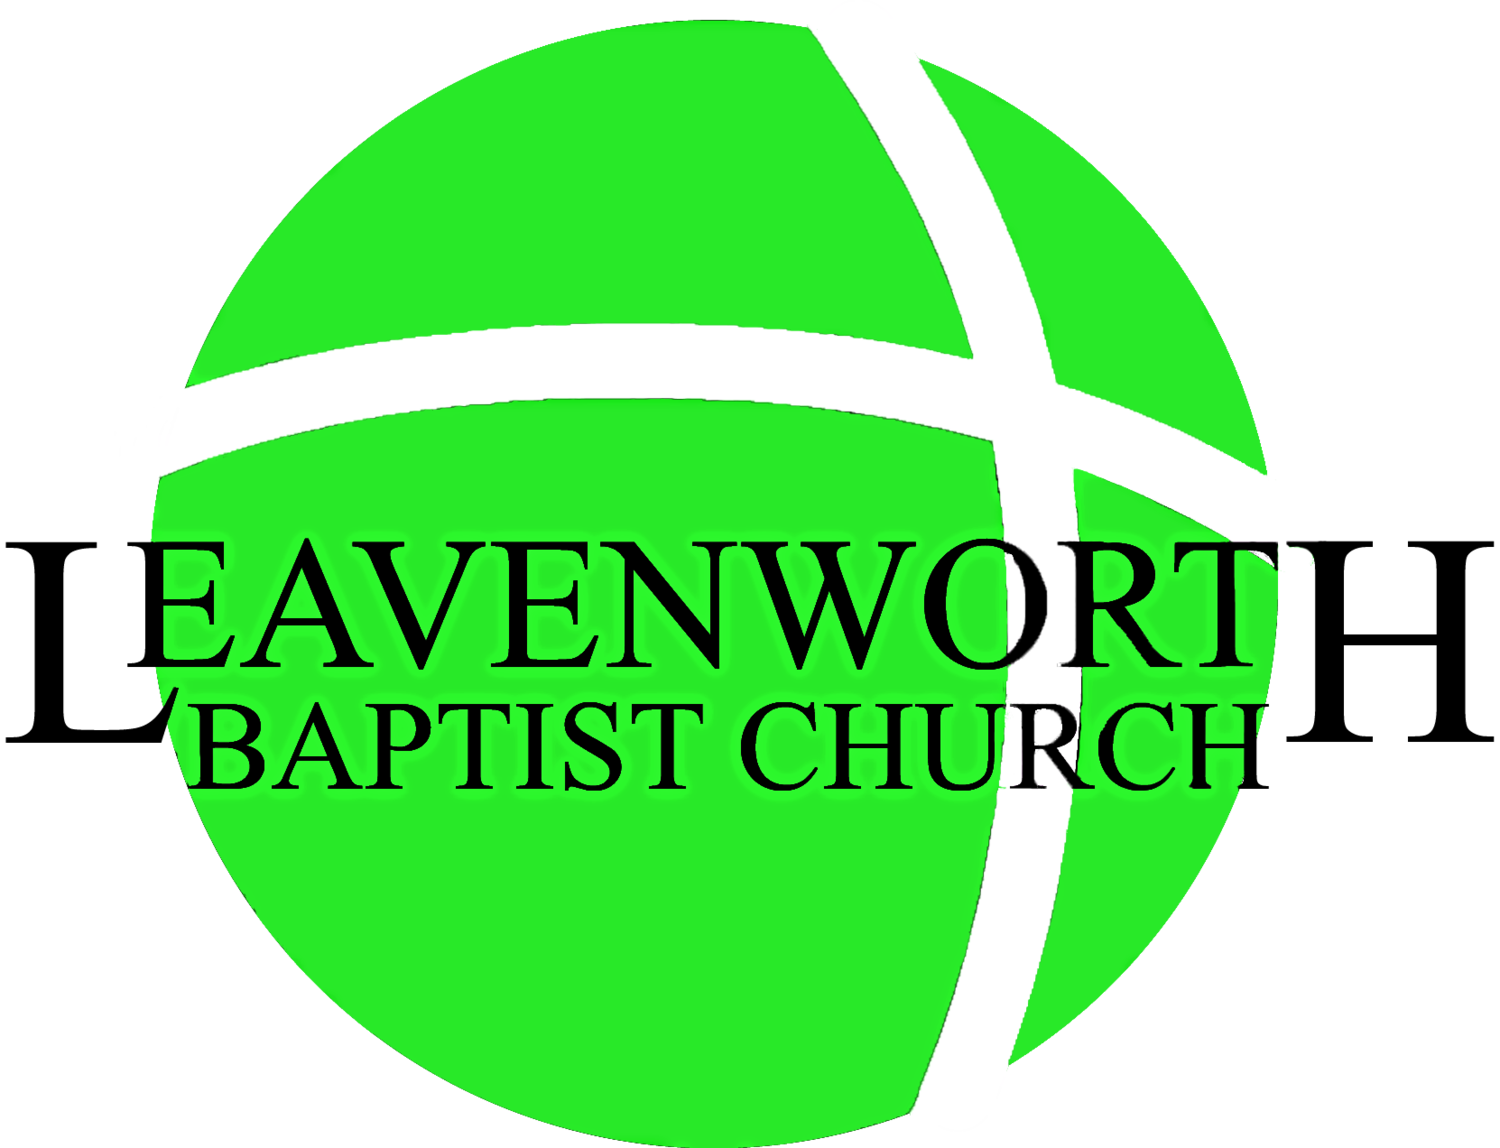 Leavenworth Baptist Church